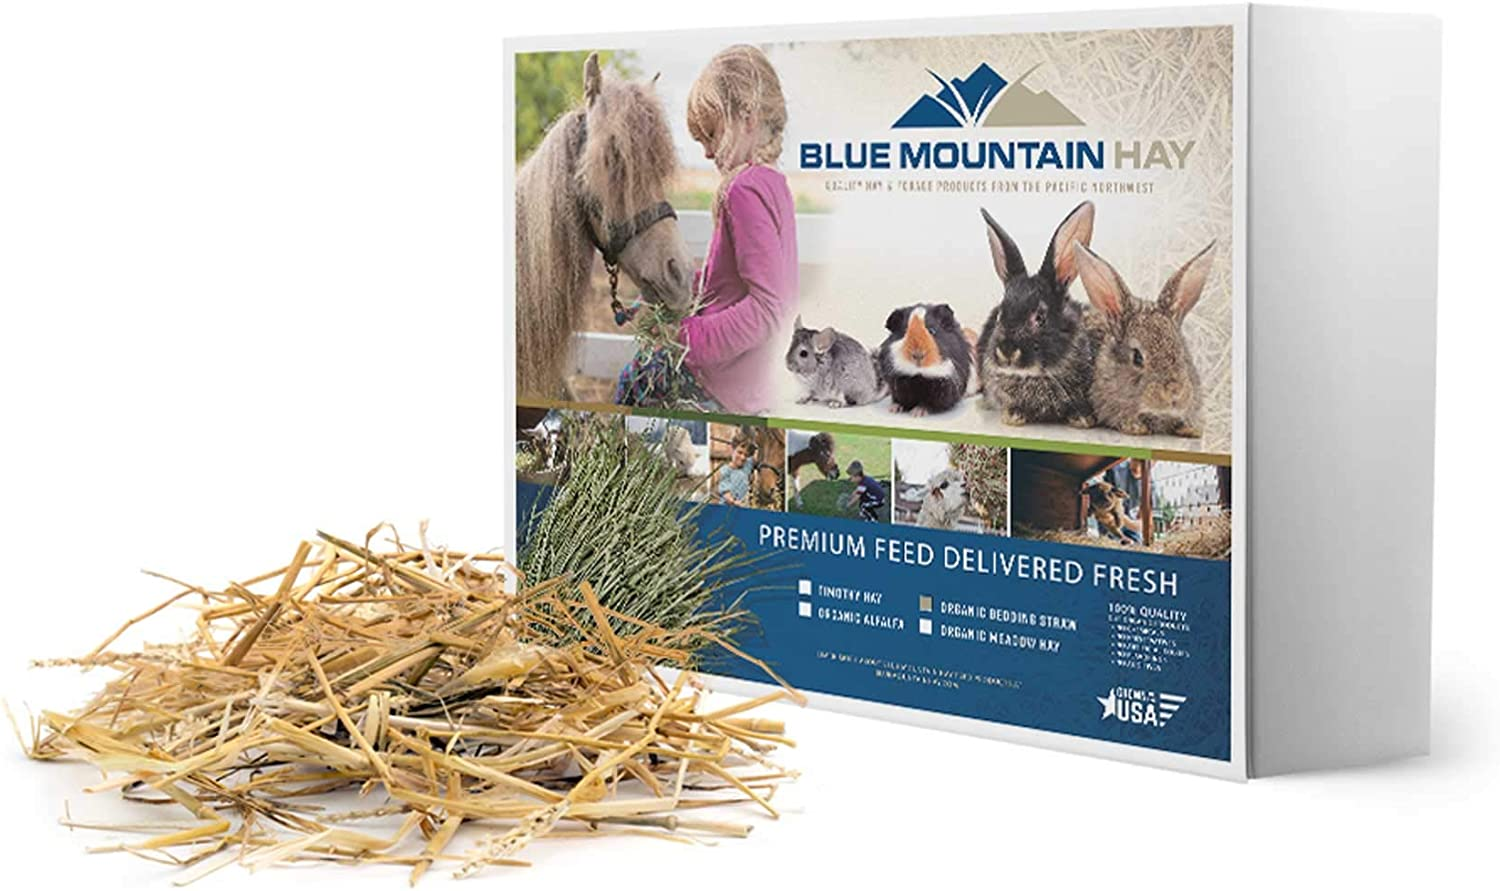 Blue Mountain Hay Organic Bedding Straw for Guinea Pigs, Chinchillas, Rabbits, Chickens and Small Pets